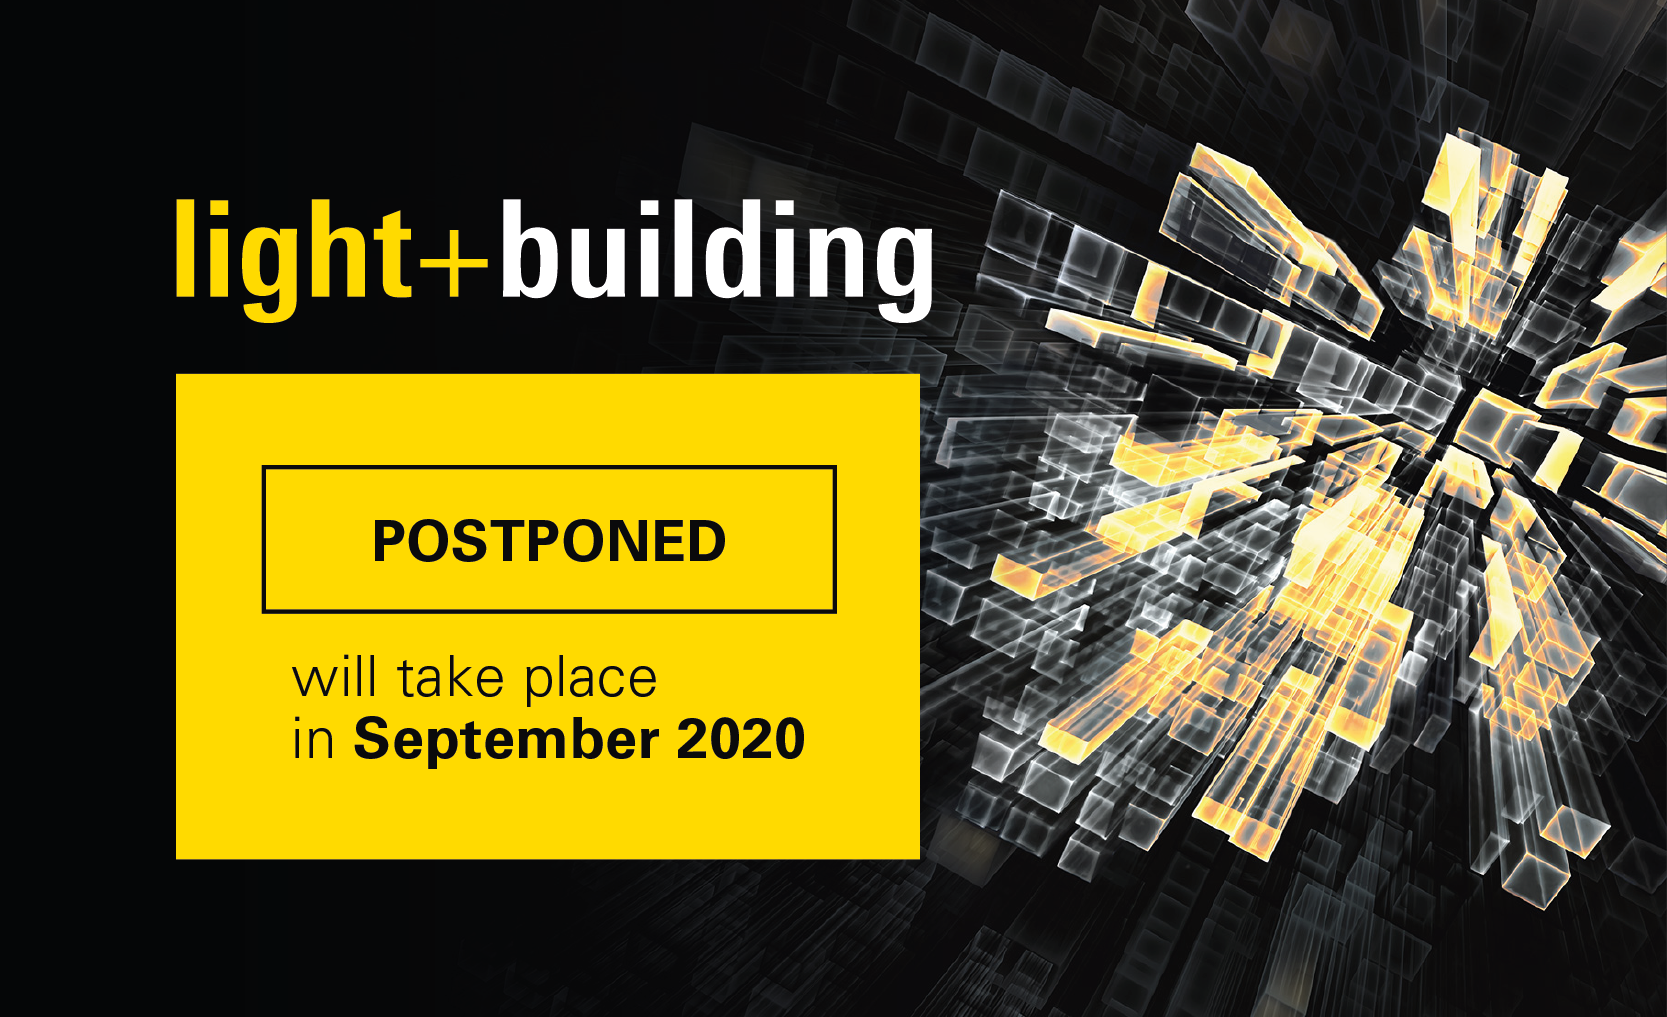 ++ Postponed: Light + Building will take place from 27 September to 2 October 2020 ++